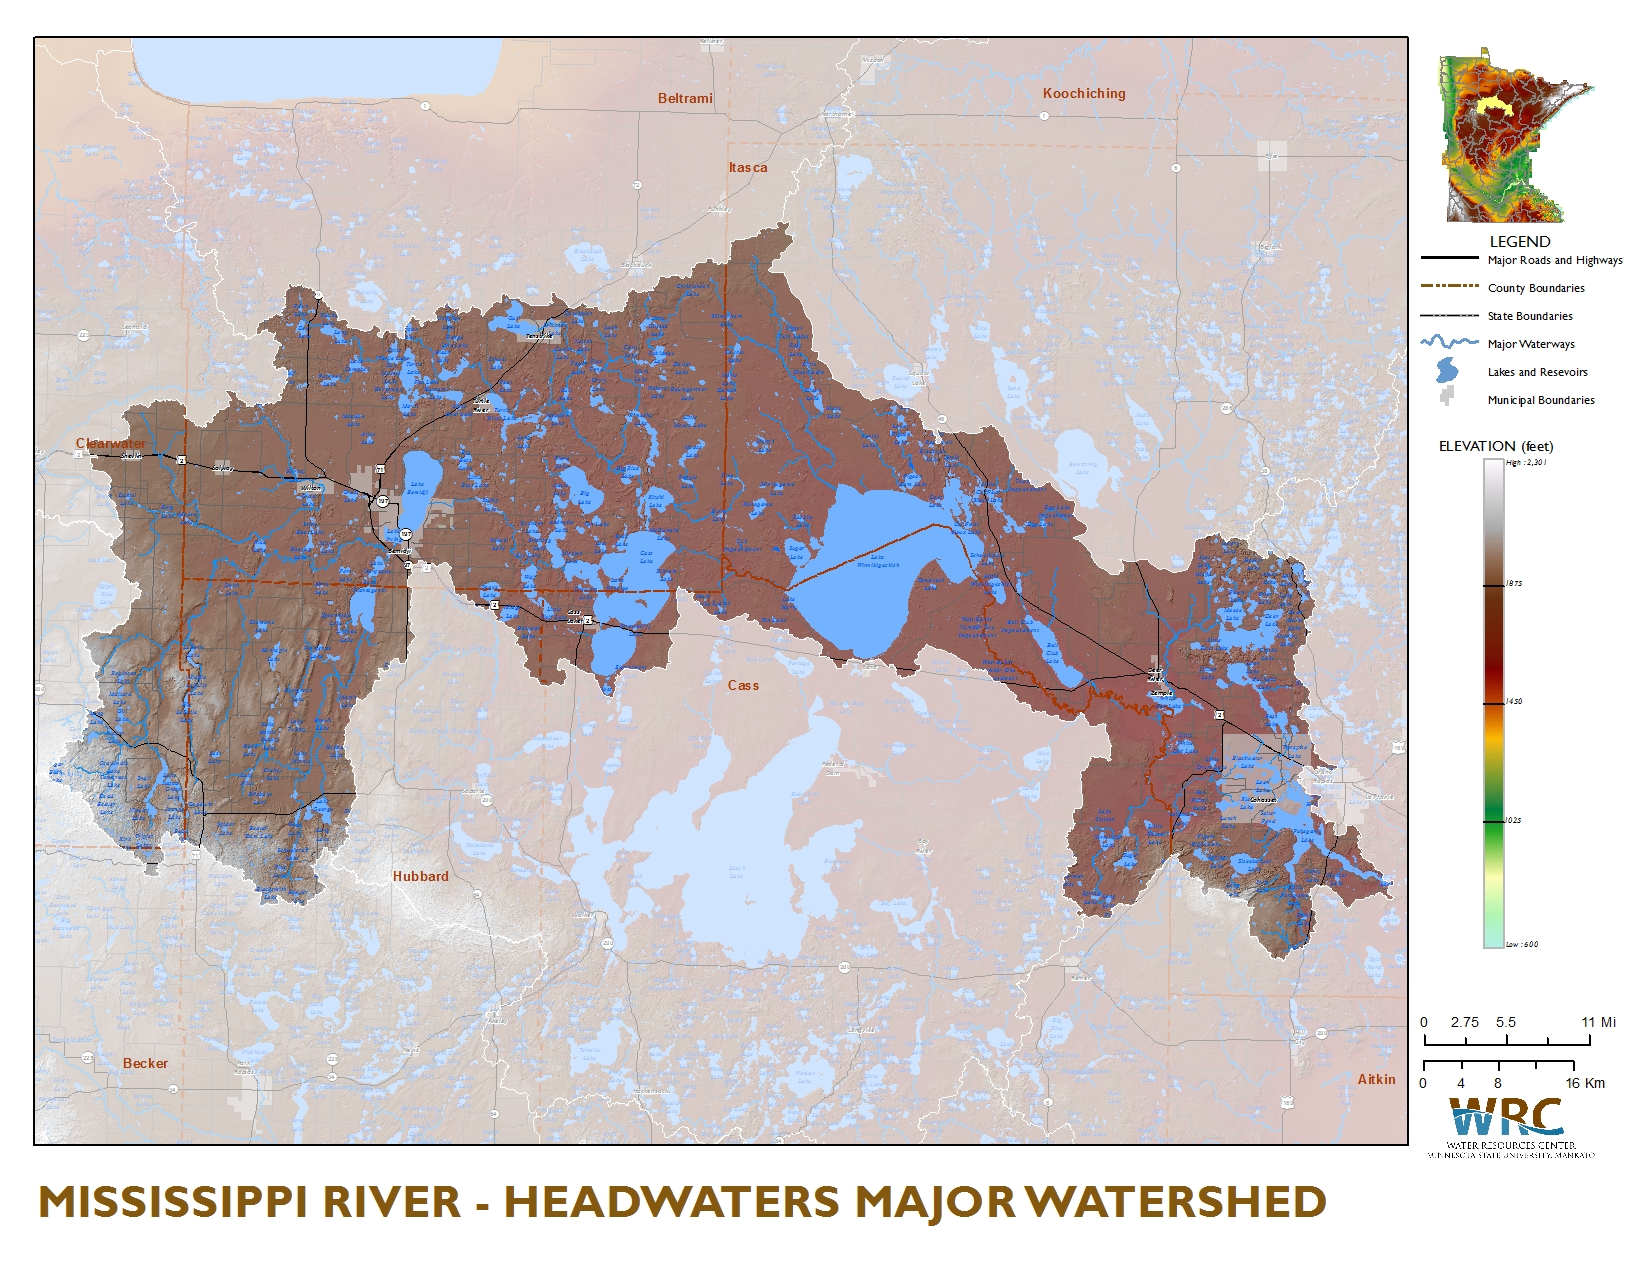 Mississippi River  Headwaters  Minnesota Nutrient Data